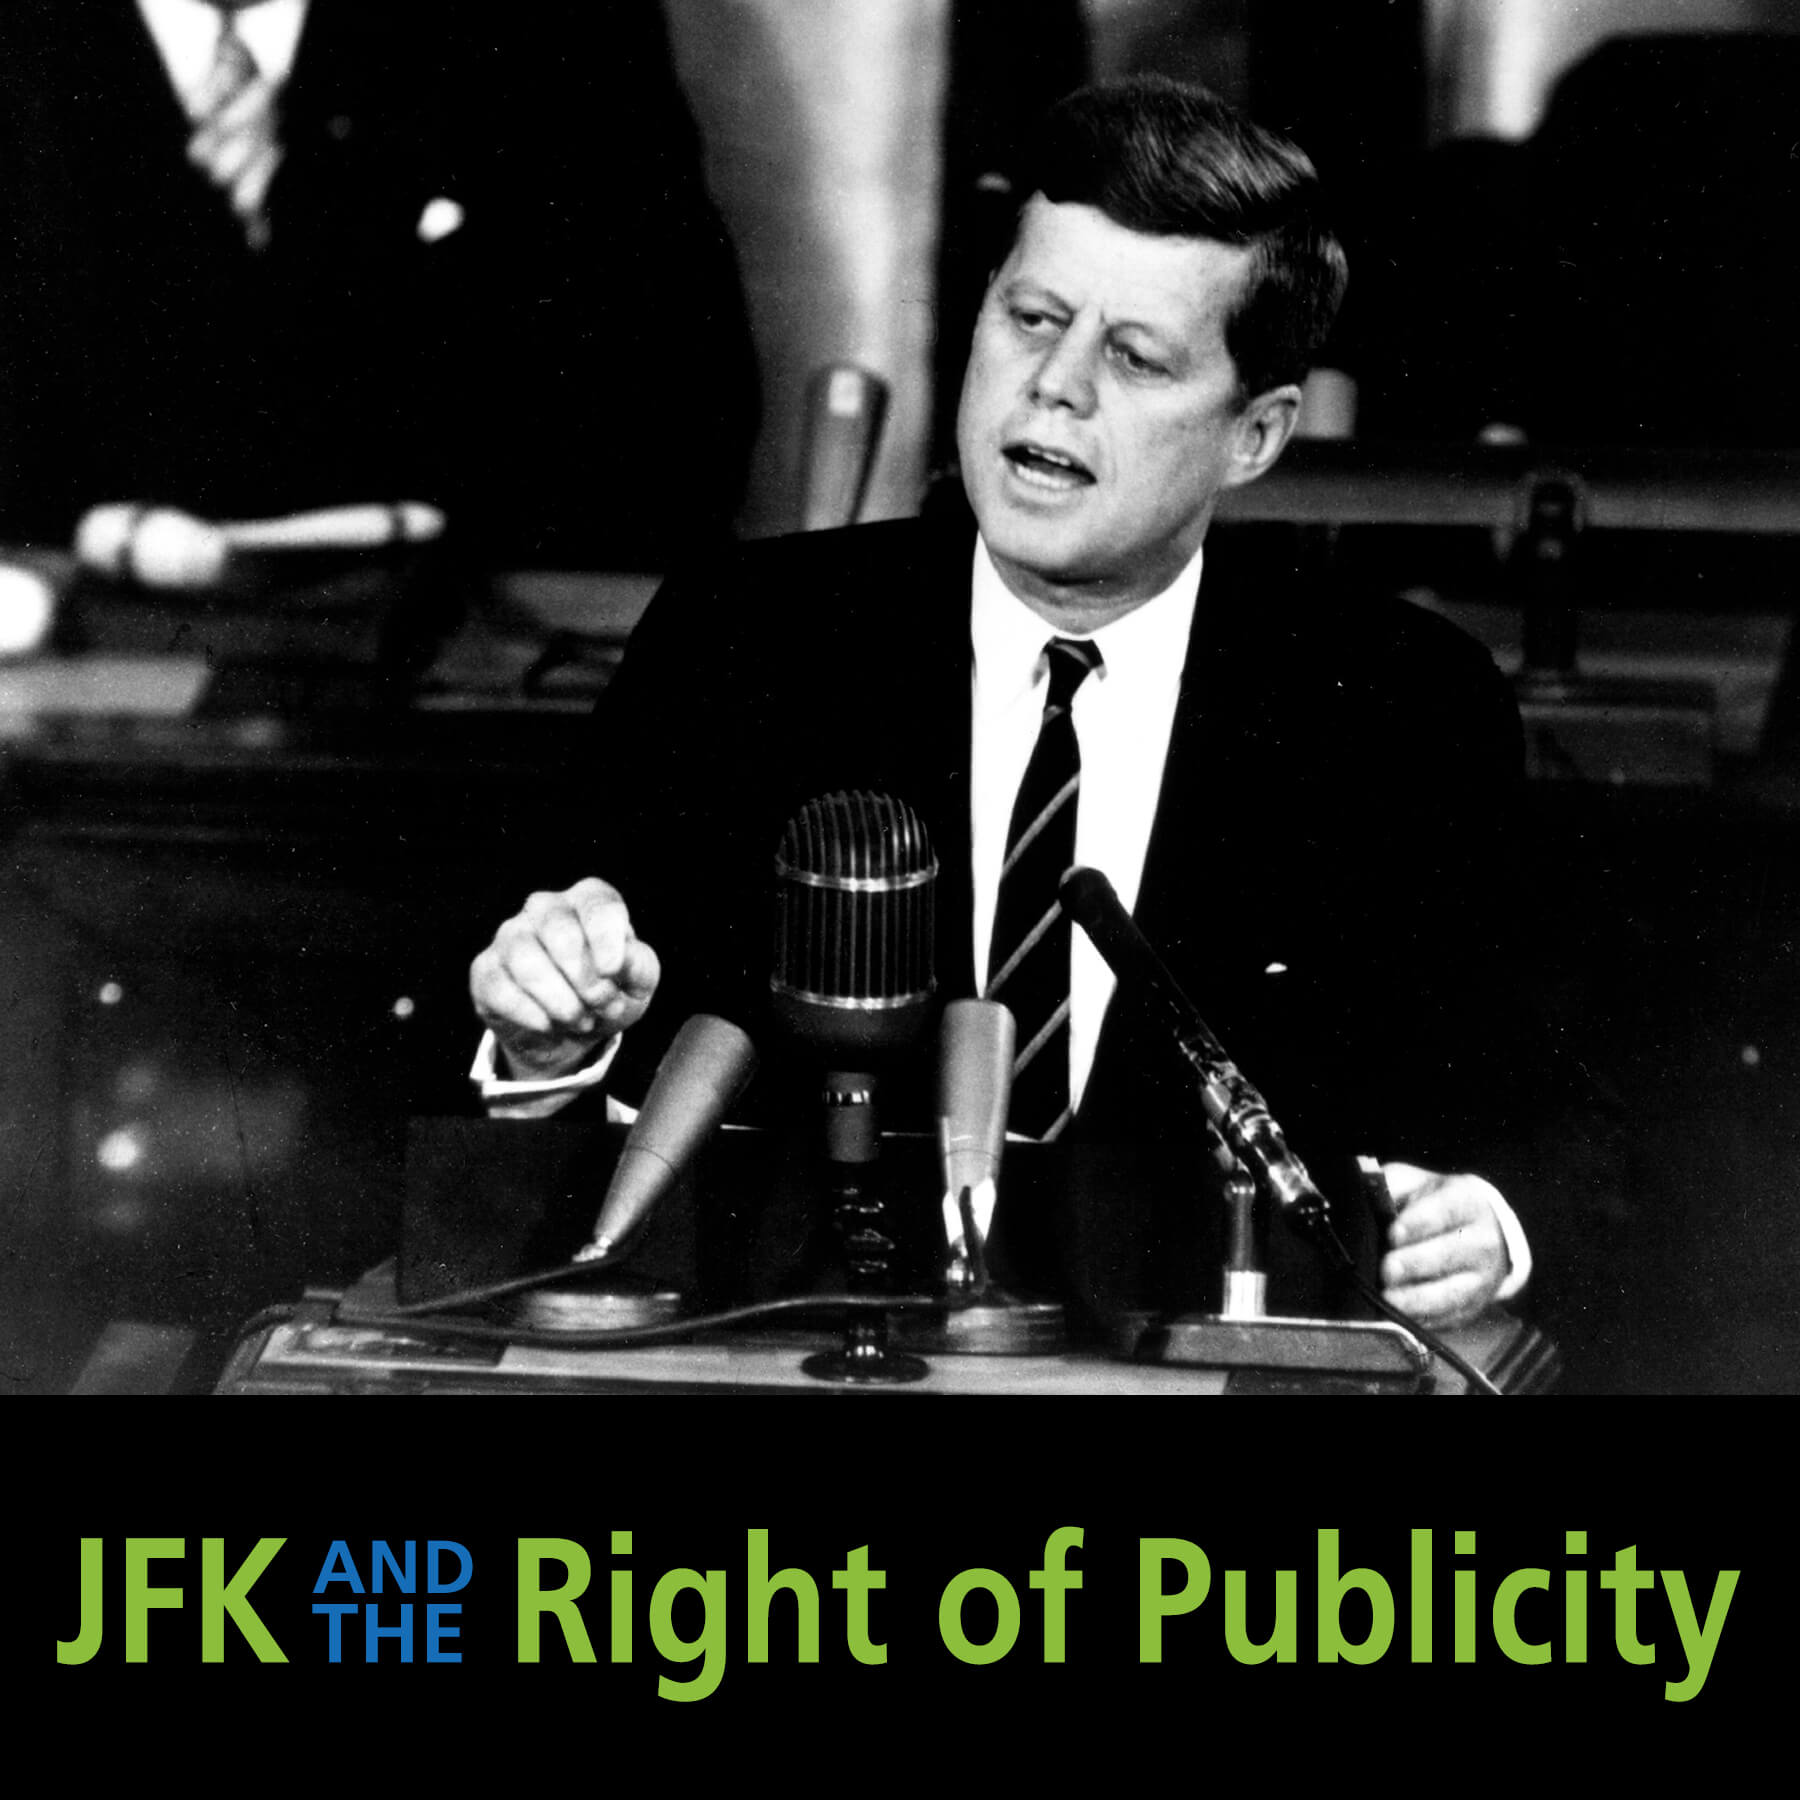 jfk and the right of publicity, president john f Kennedy giving a speech